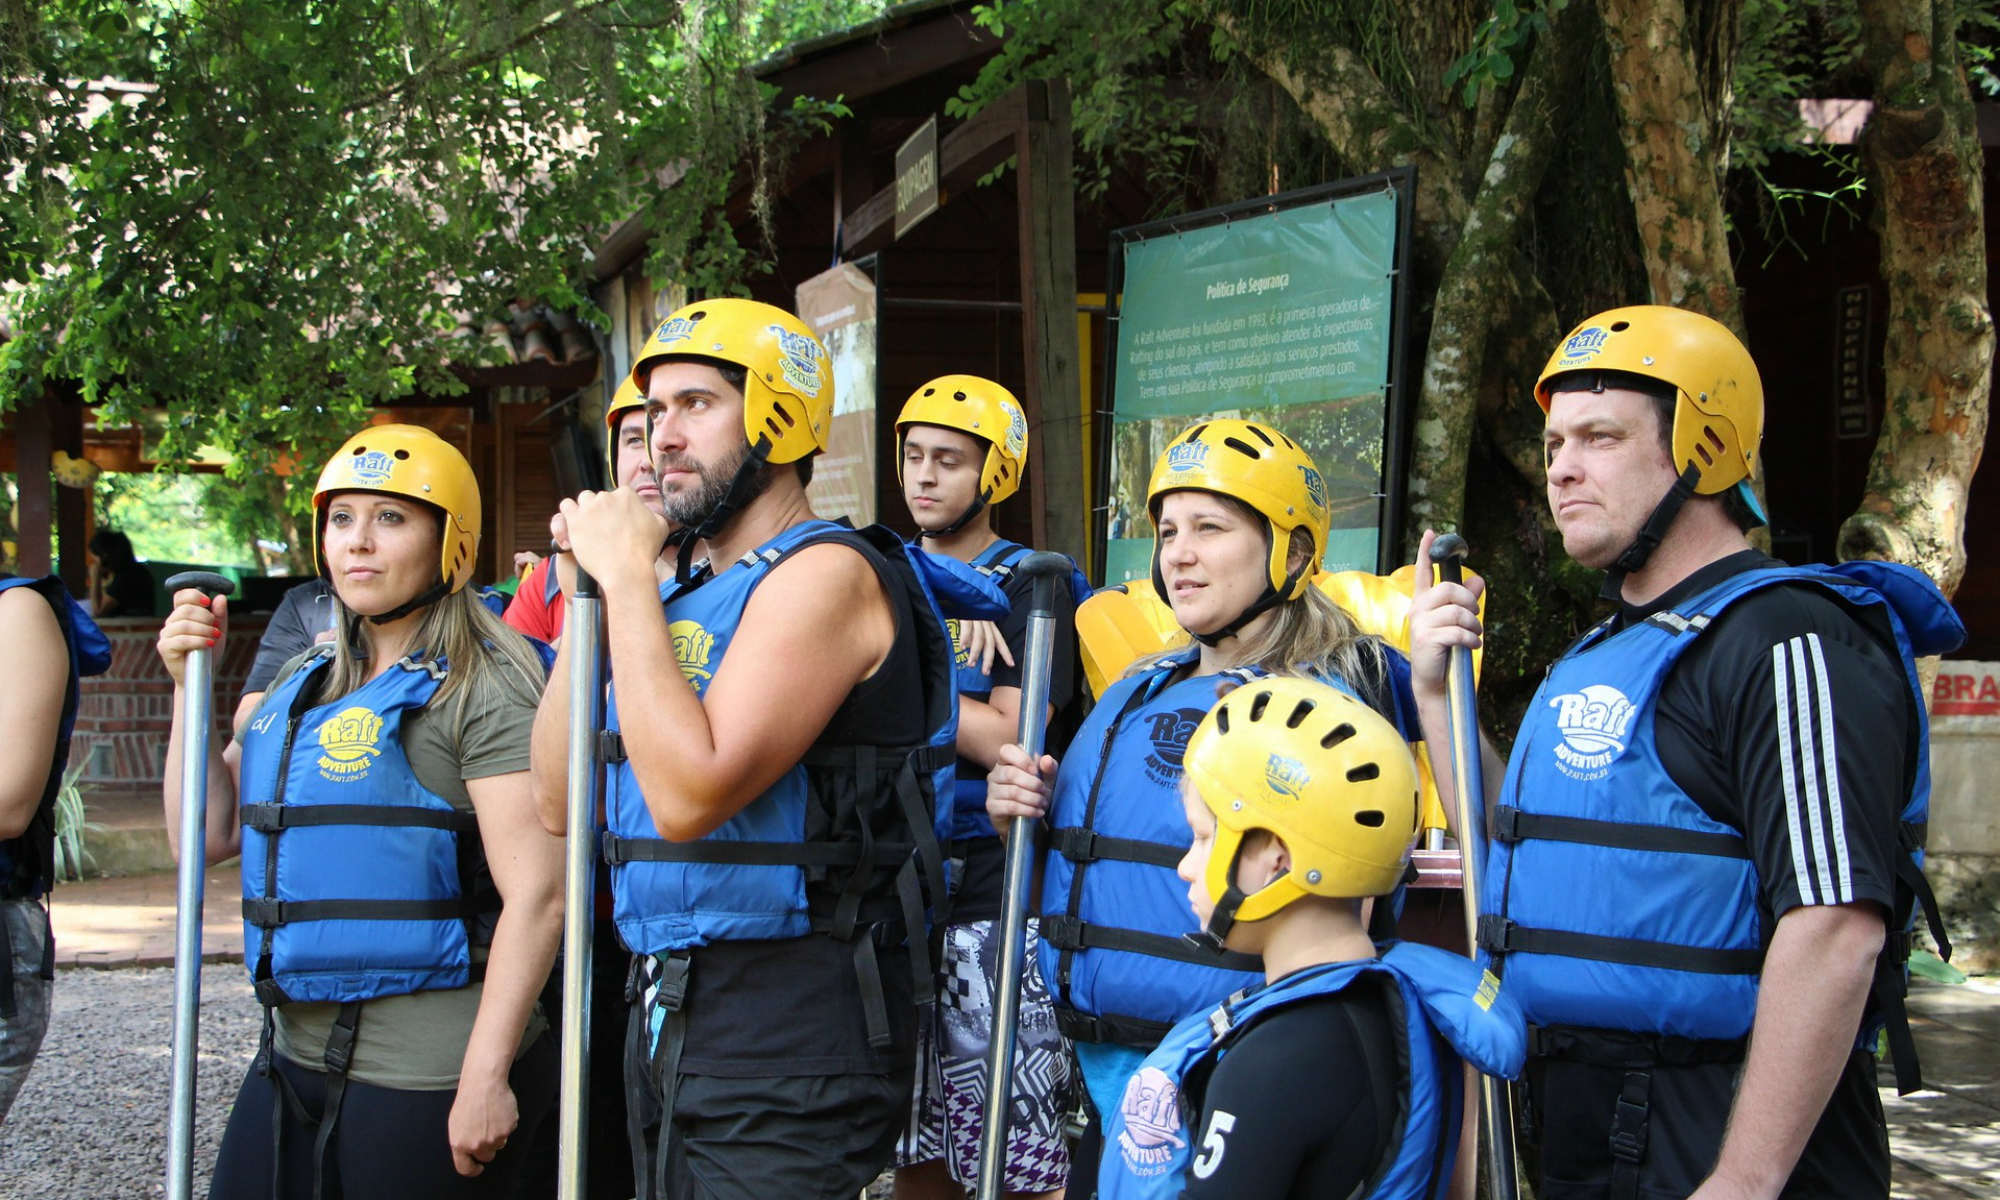 A family is listening to the safety instructions before embarking on their white water rafting tour.